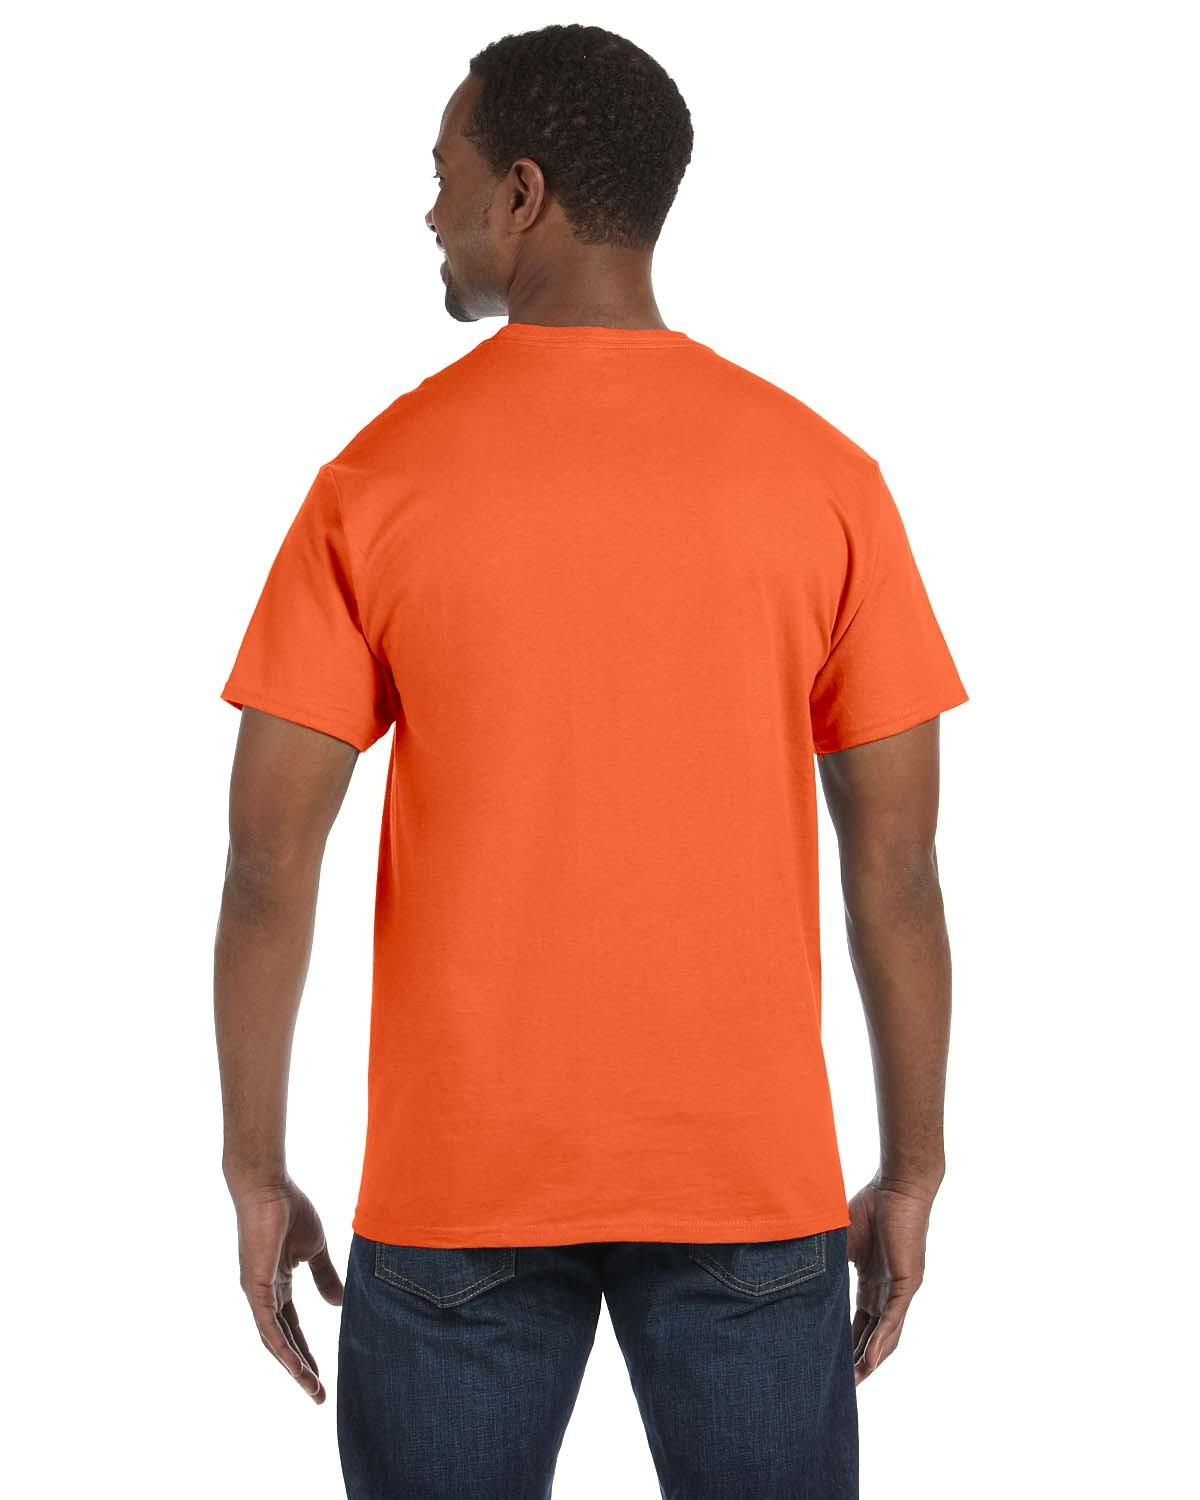 5250T Hanes ATHLETIC ORANGE